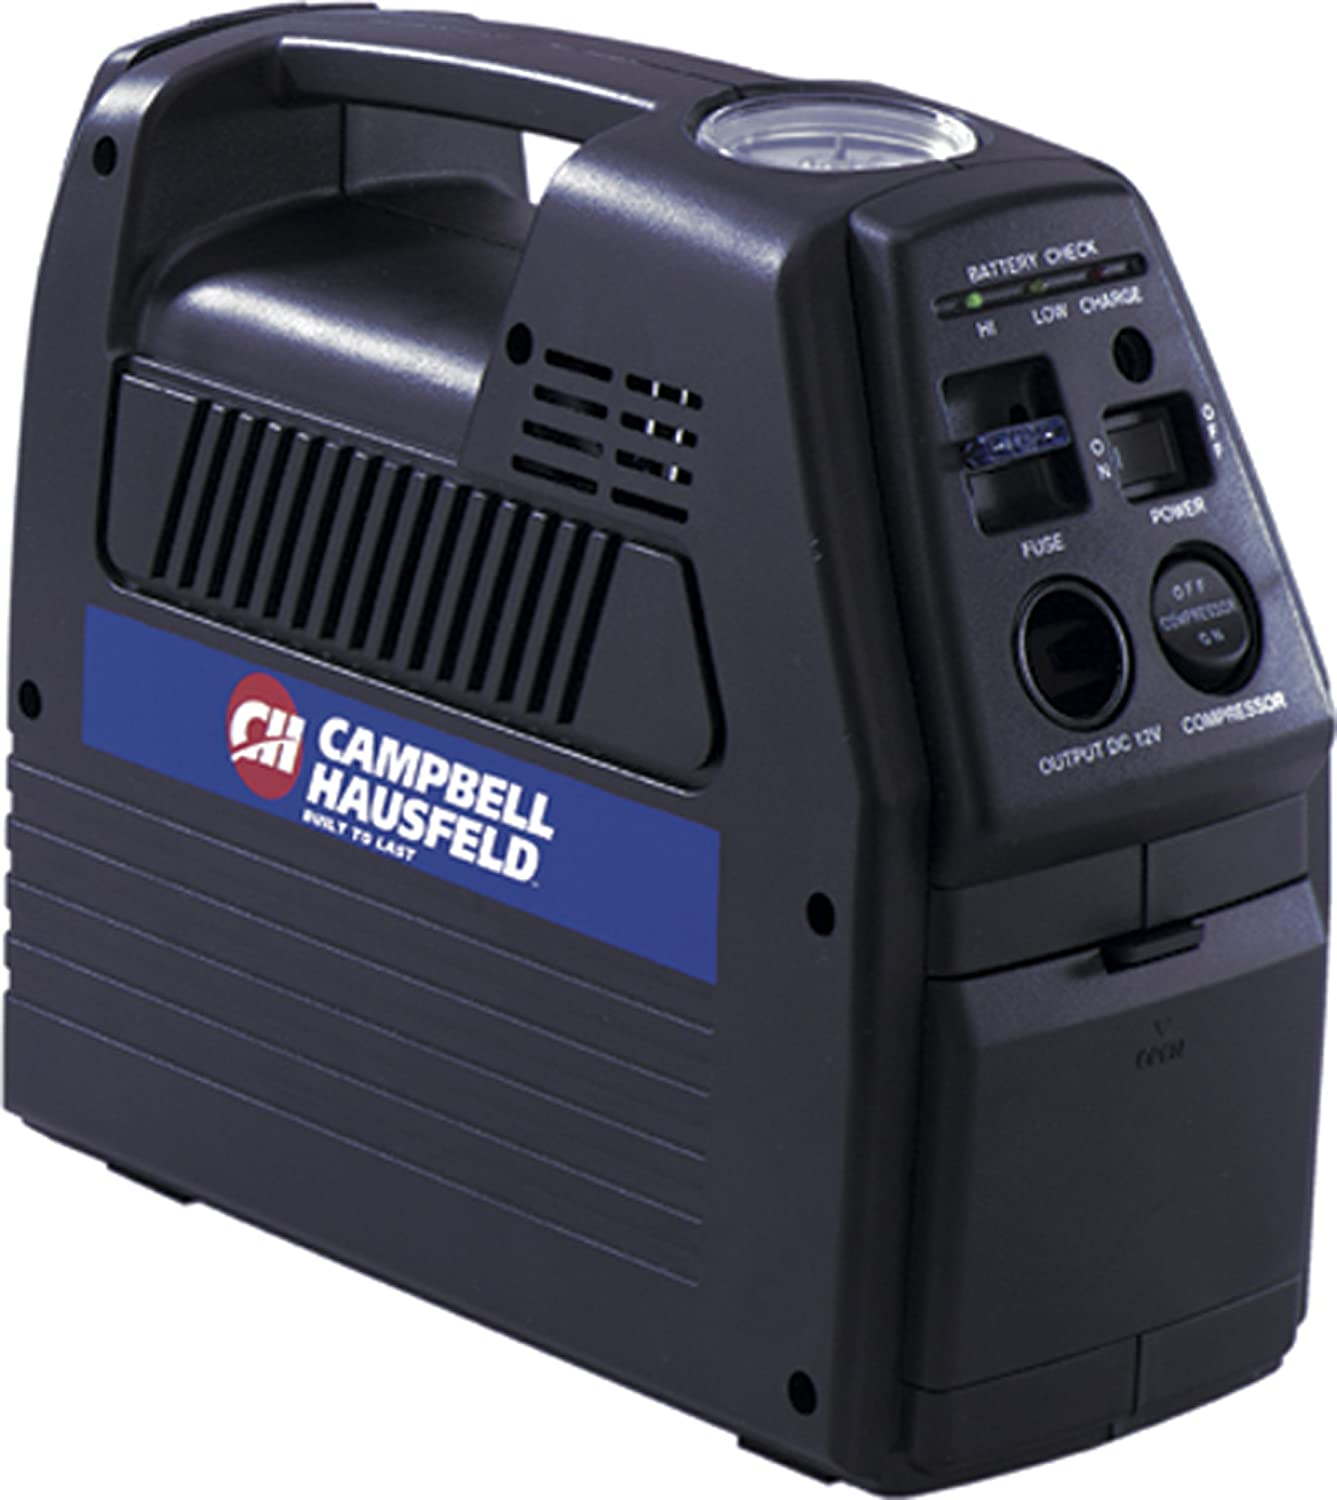 8. The Campbell Hausfeld CC2300 12 Volt Rechargeable Inflator